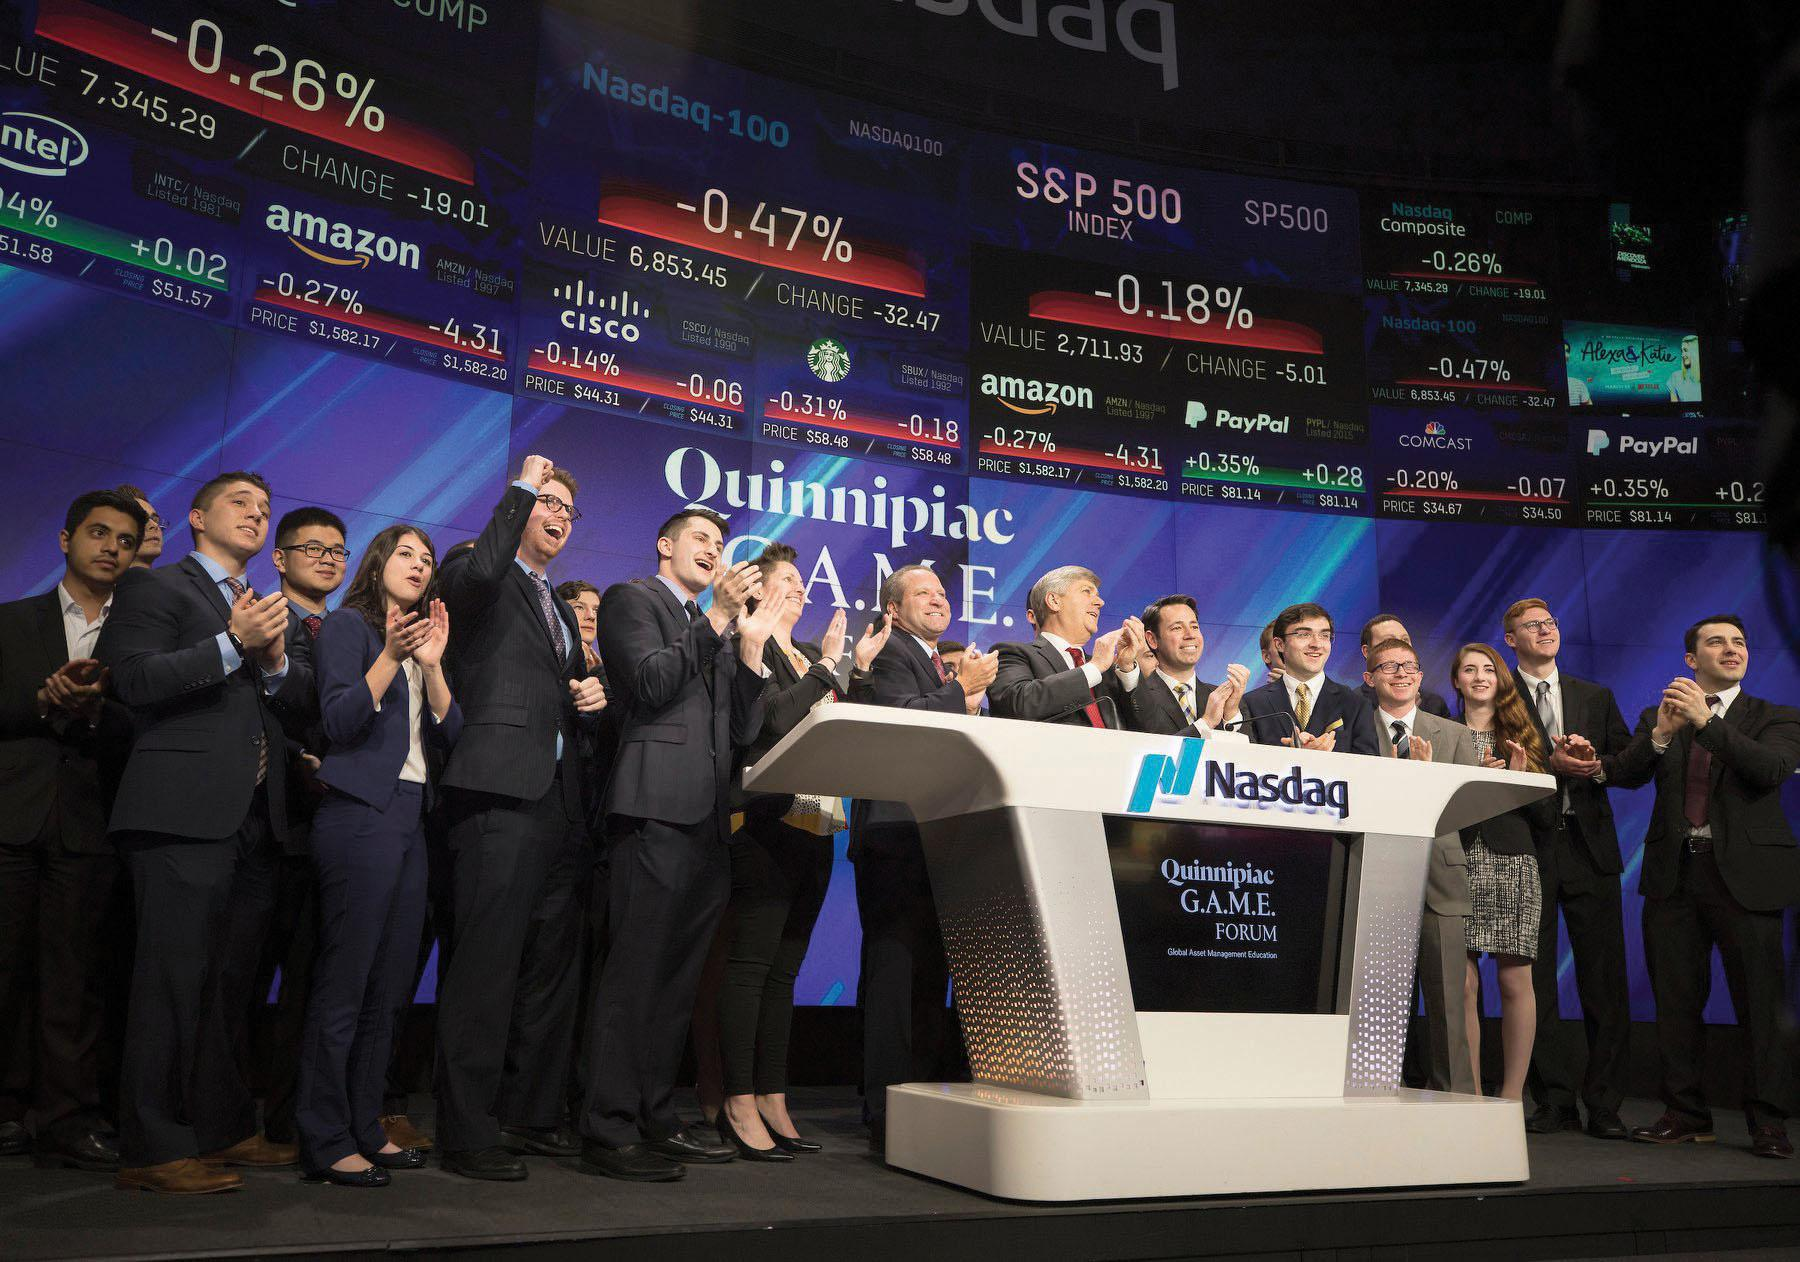 School of Business holds eighth annual G.A.M.E Forum with NASDAQ